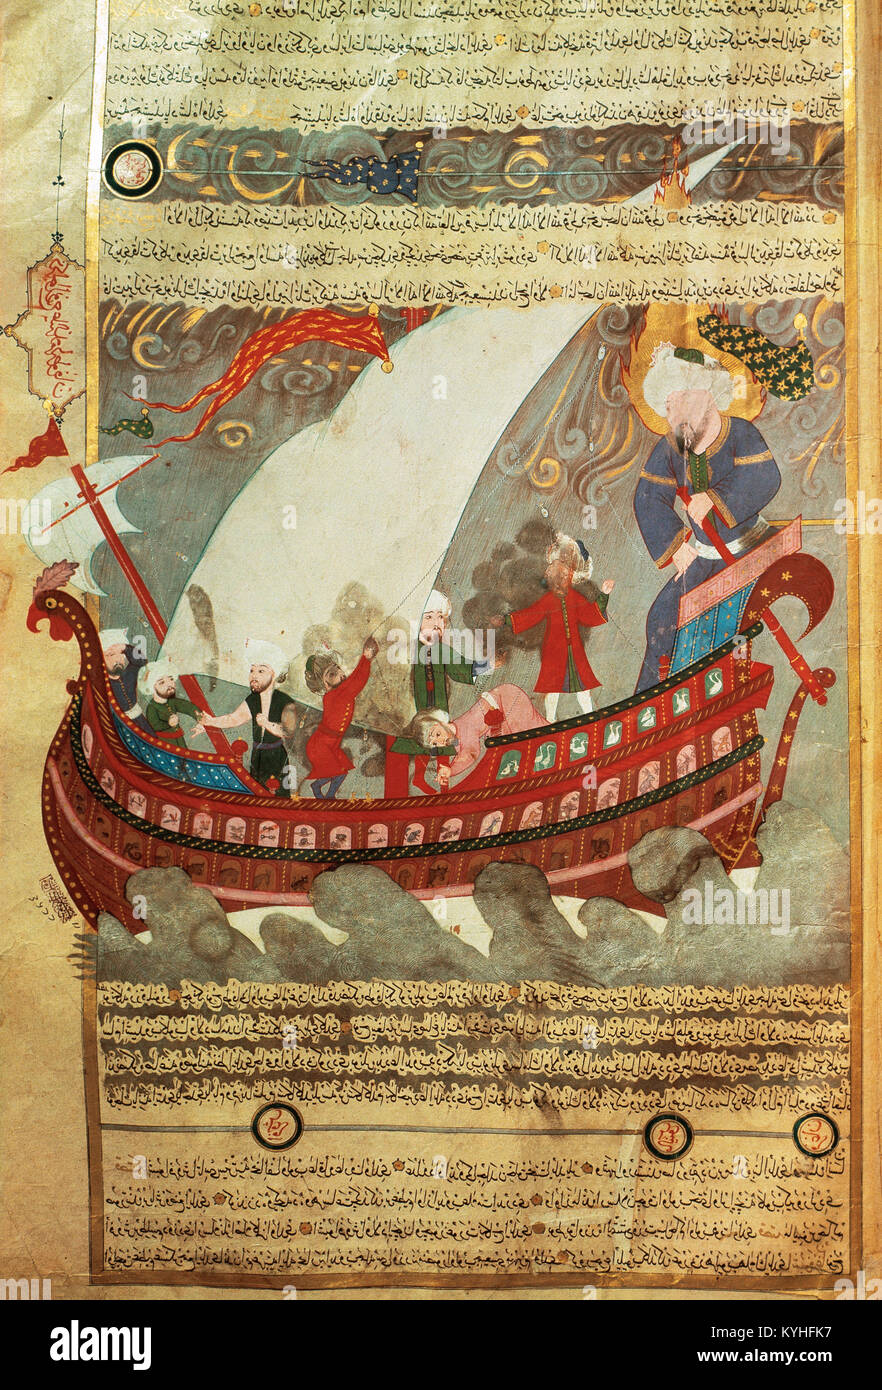 Noah's Ark revolves around the Kaaba in Mecca, submerged by the universal flood. Miniature, 16th century. Topkapi - Stock Image